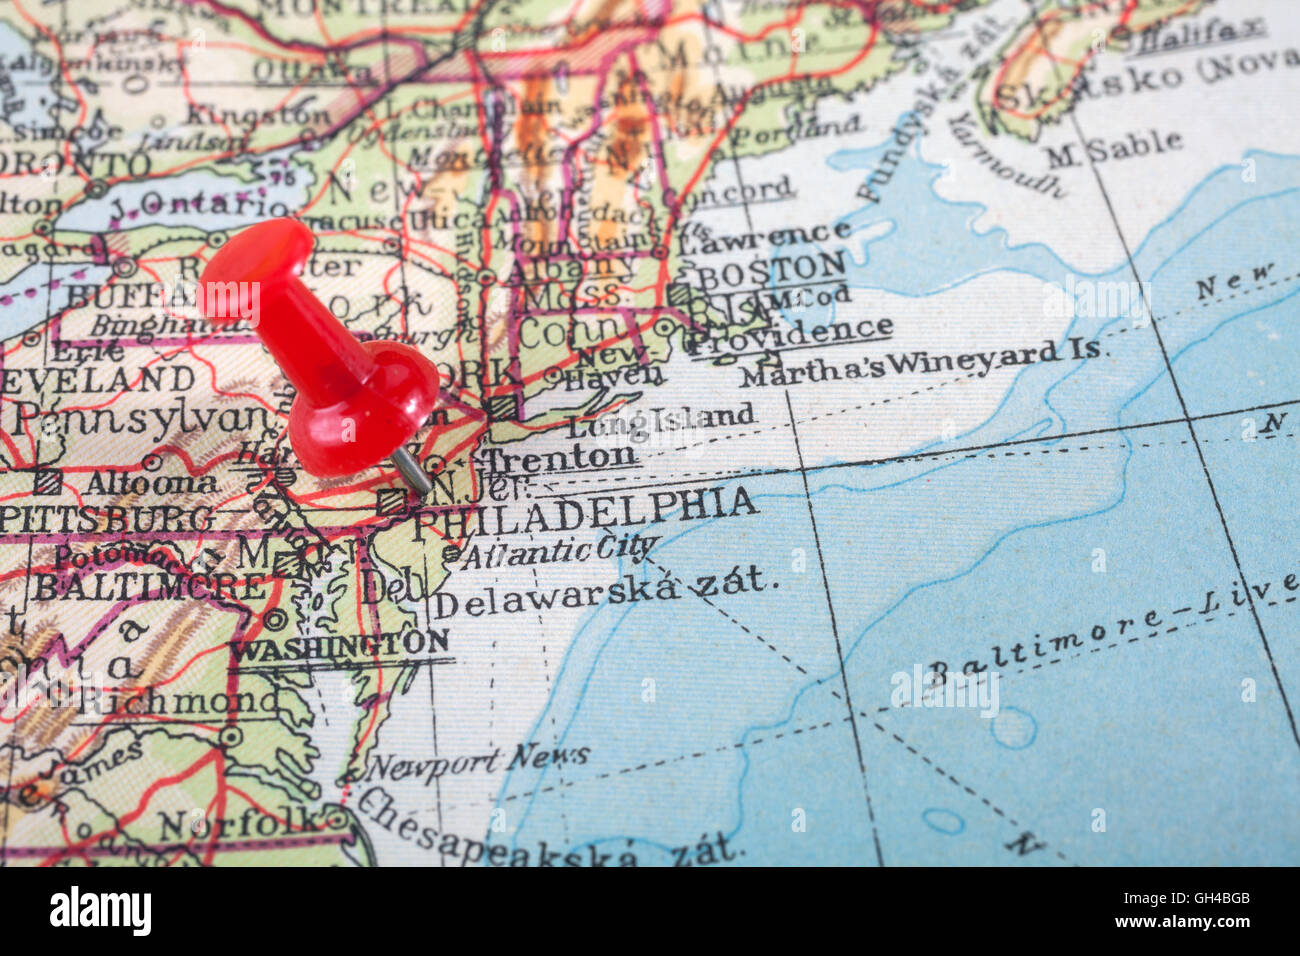 red push pin showing the location of a destination point on a map philadelphia